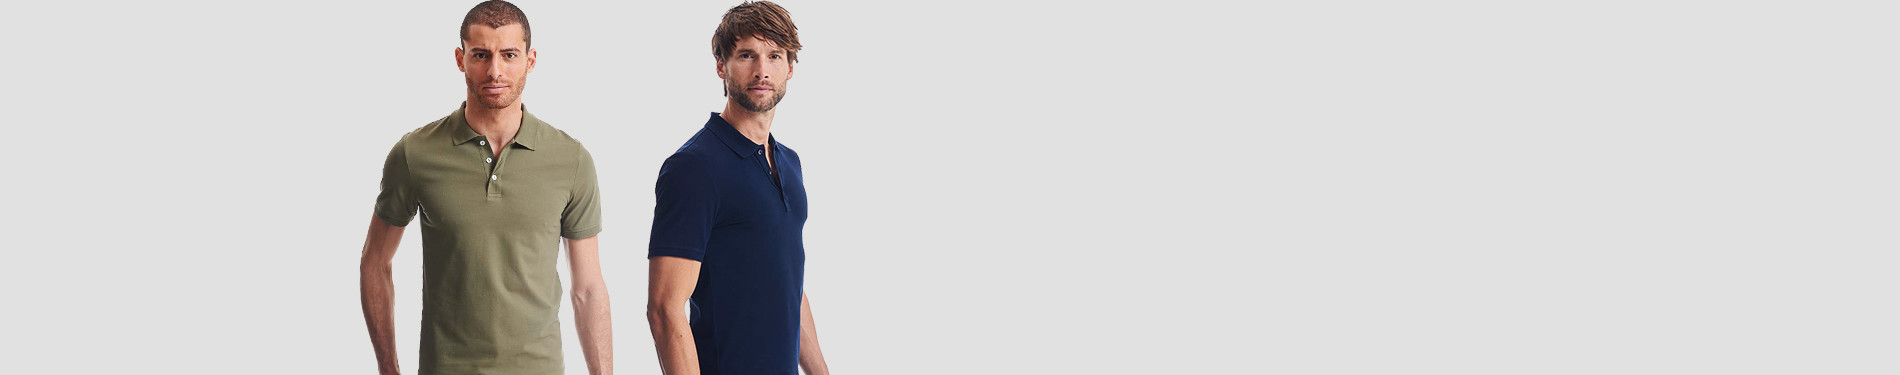 Slim Fit Poloshirts